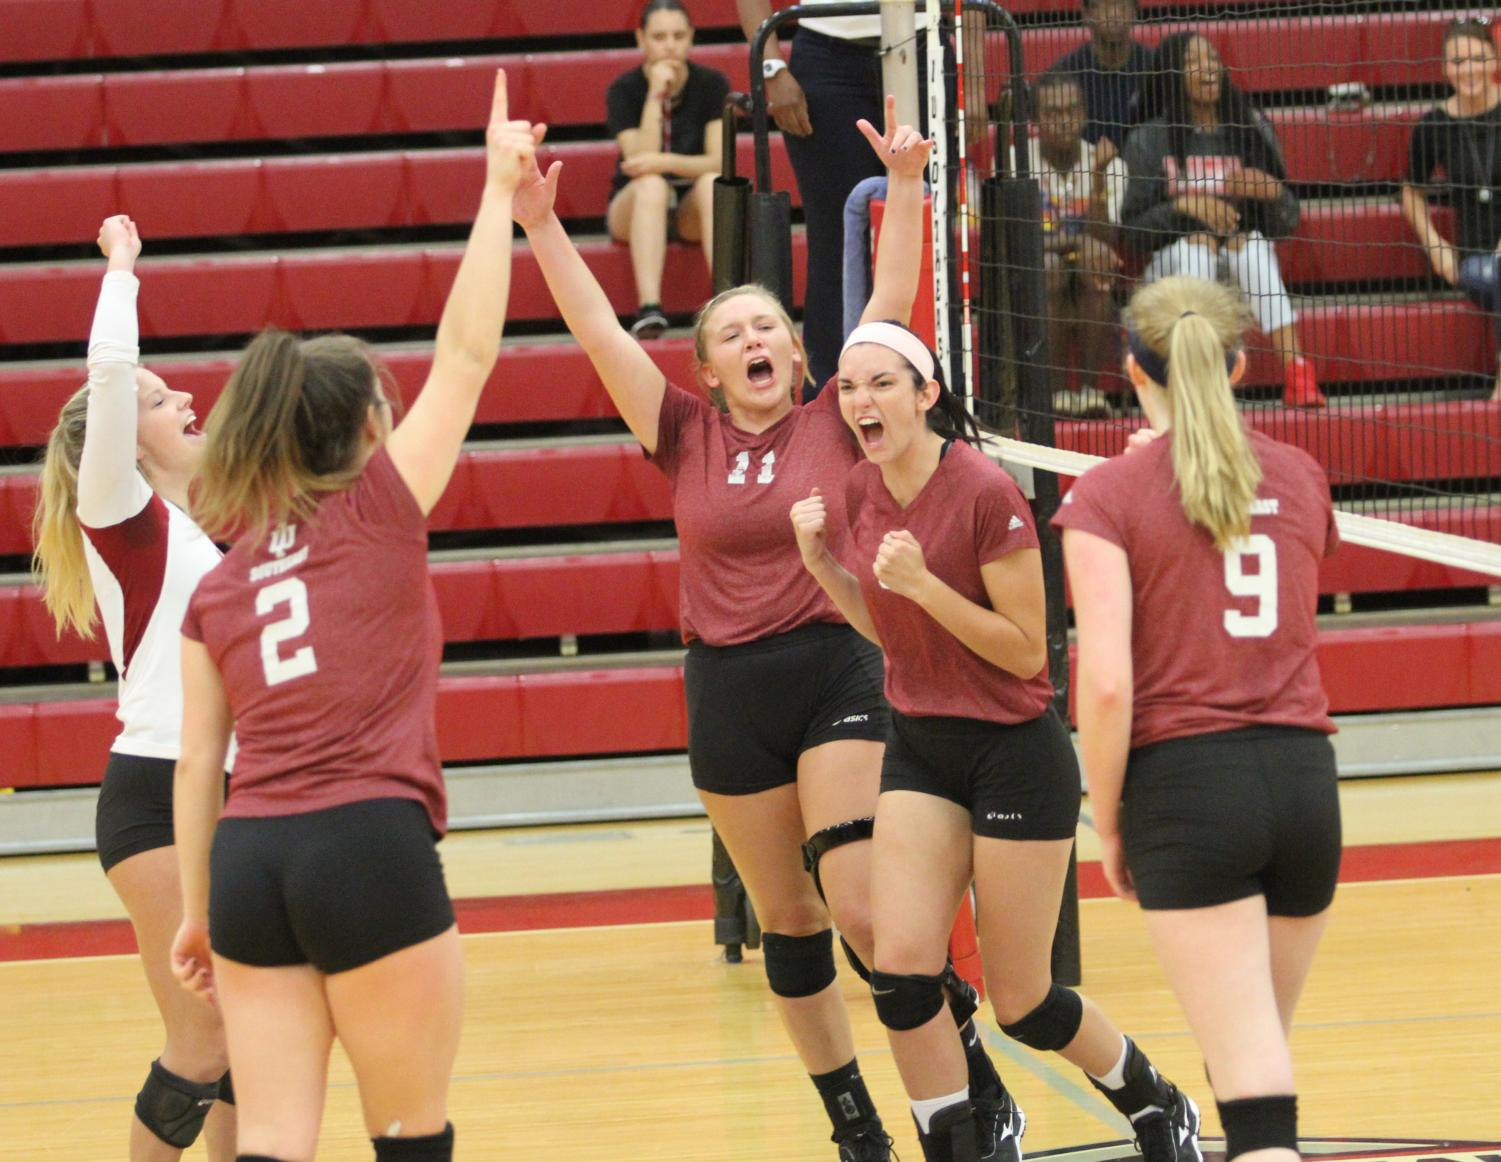 The volleyball team celebrates a point during a home match against Cincinnati Christian University last season. The Grenadiers home opener will fall on Thursday, Aug. 30, at 7 p.m. against St. Mary-of-the-Woods.